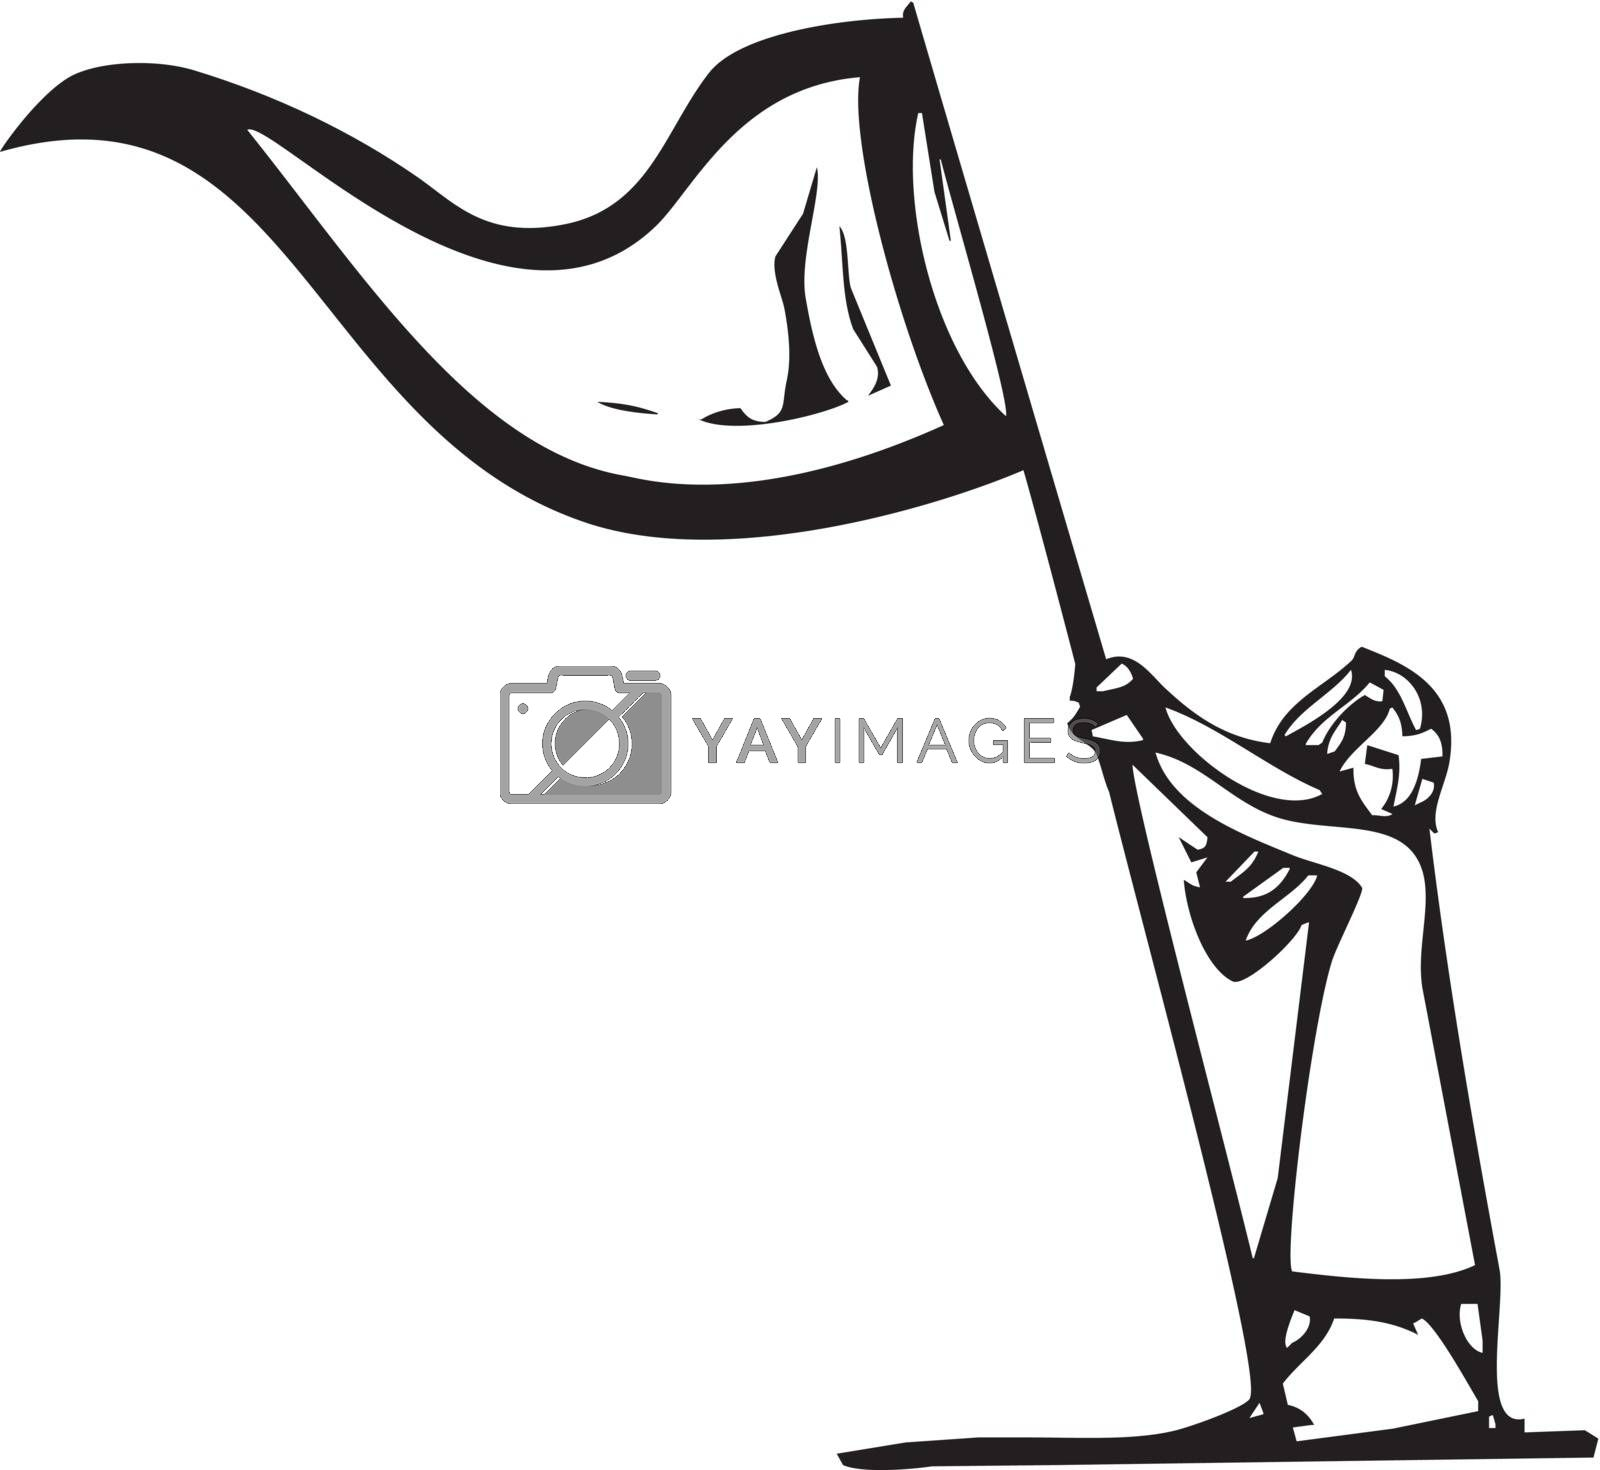 Woodcut expressionist style image of a girl waving a flag